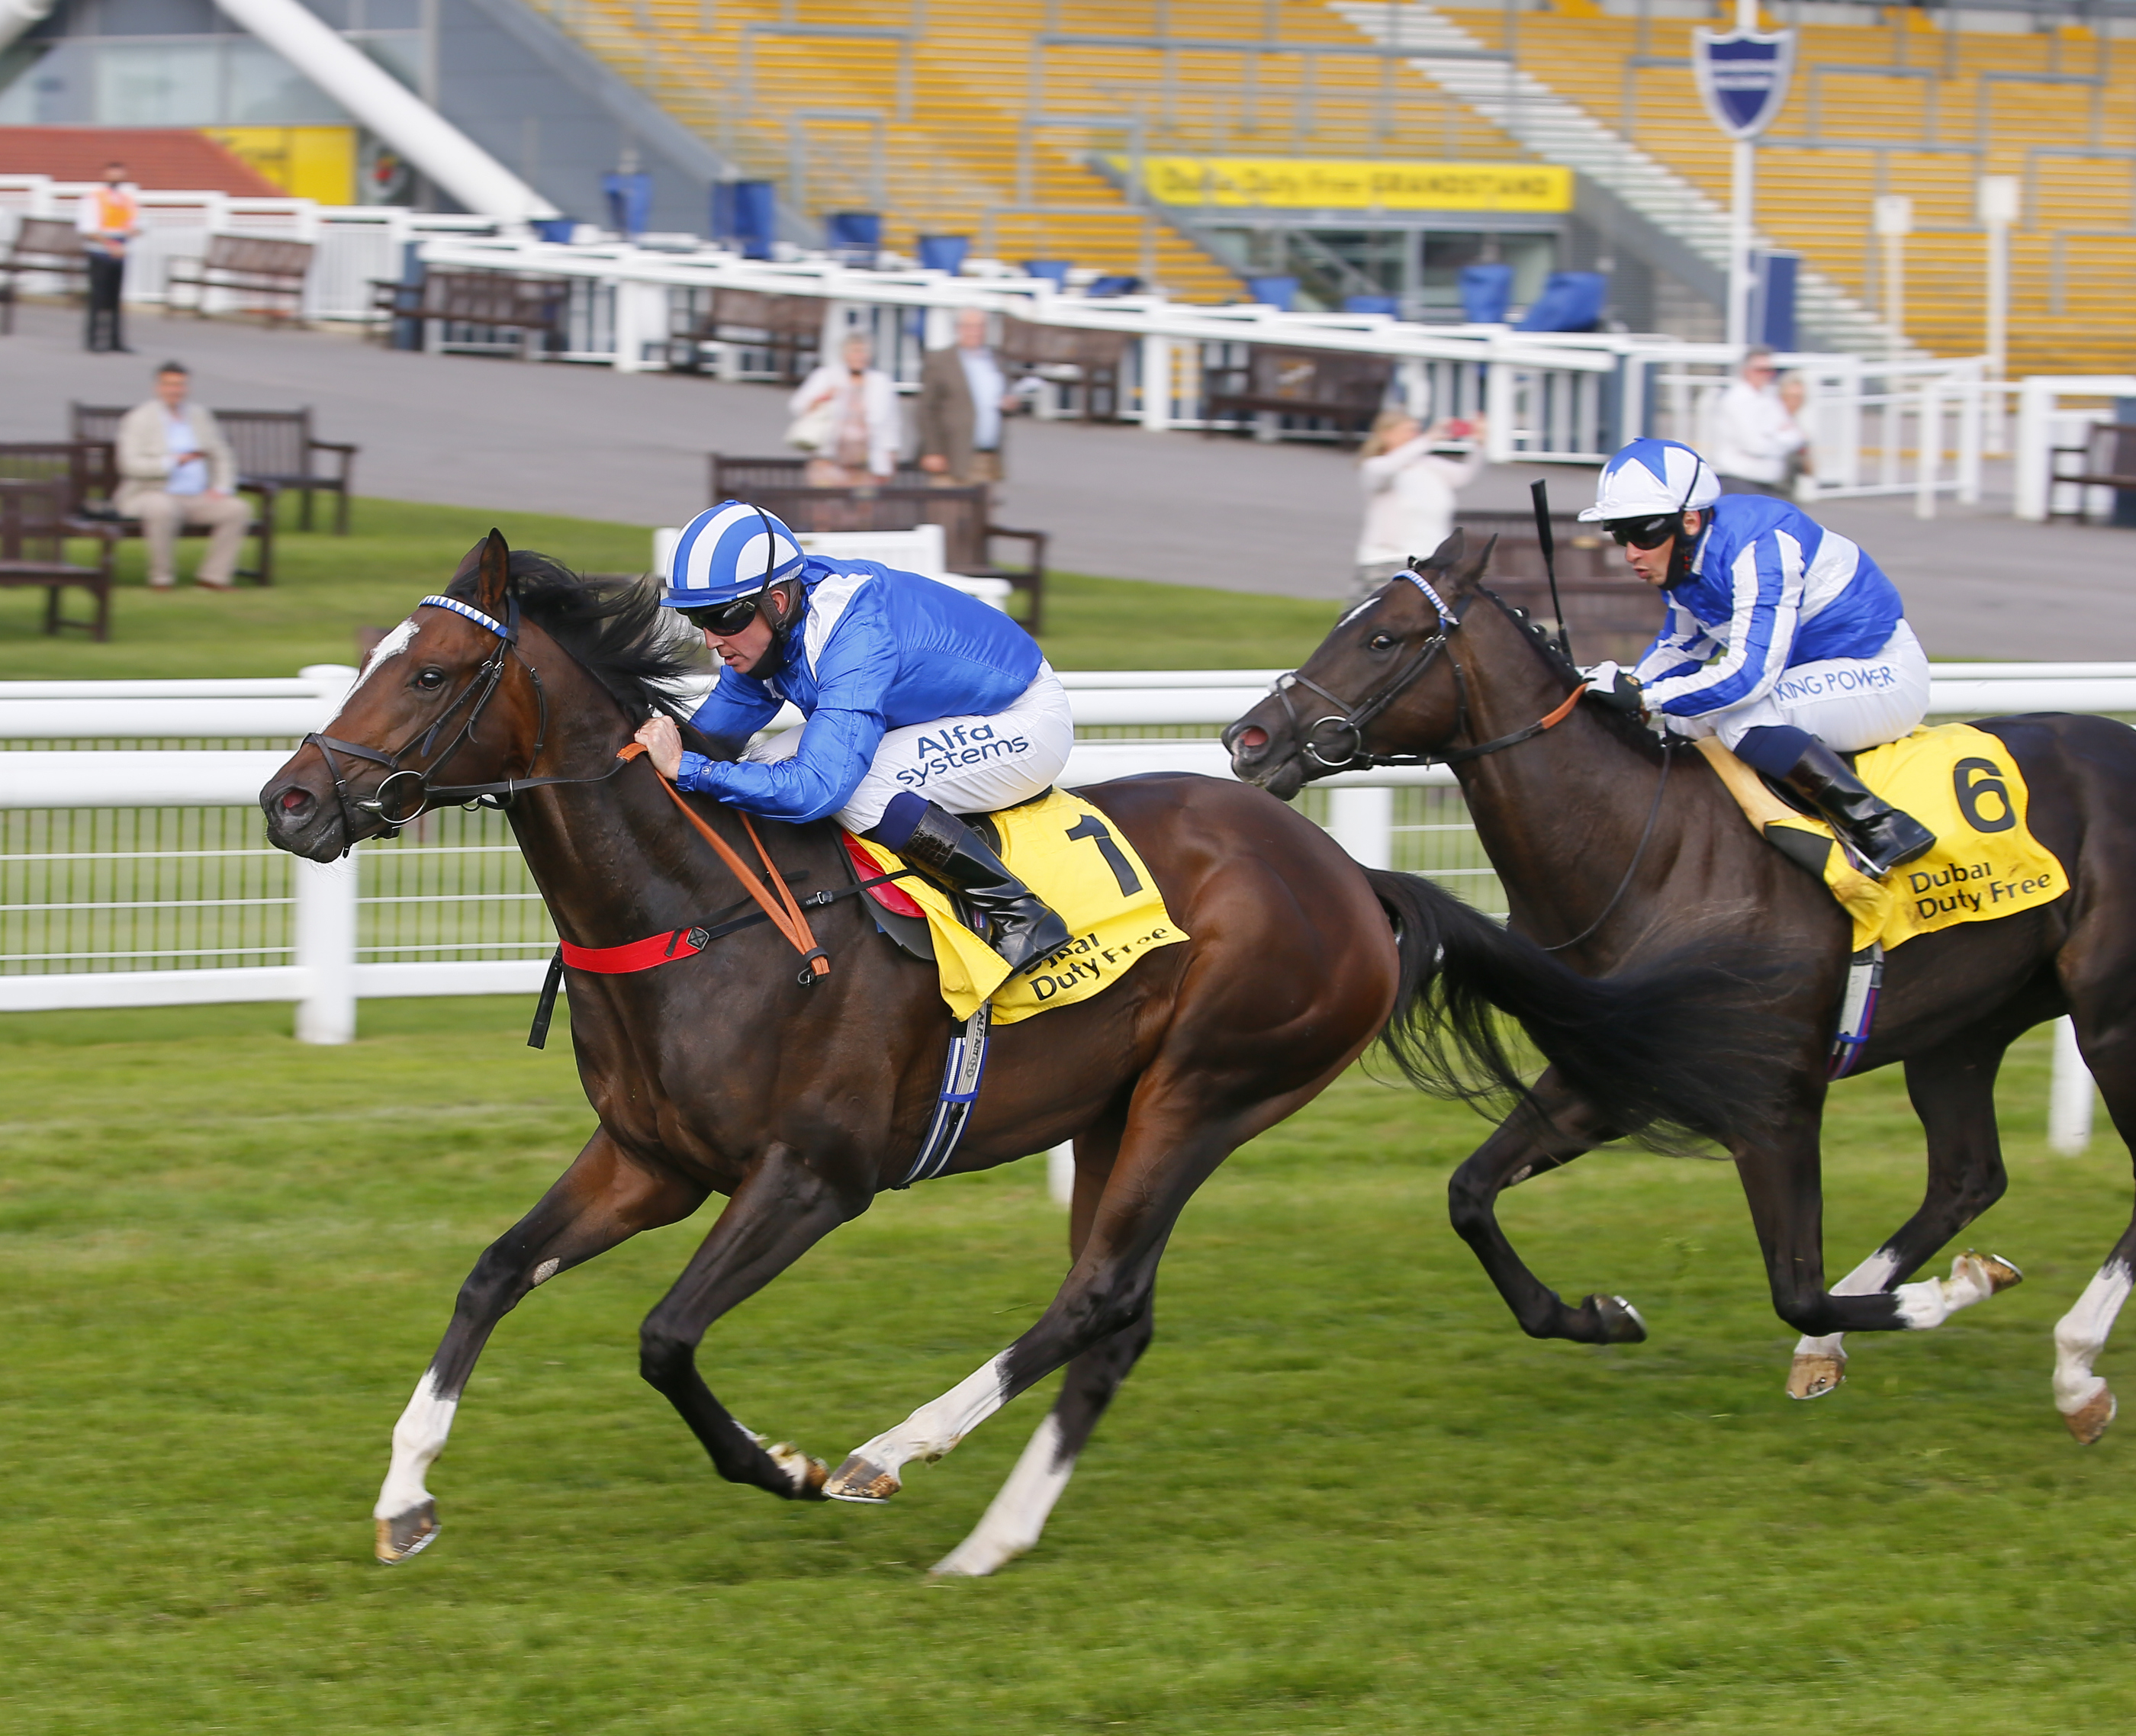 Mill Reef Stakes (Gr2) : Alkumait, une consolation pour Markus Tregoning